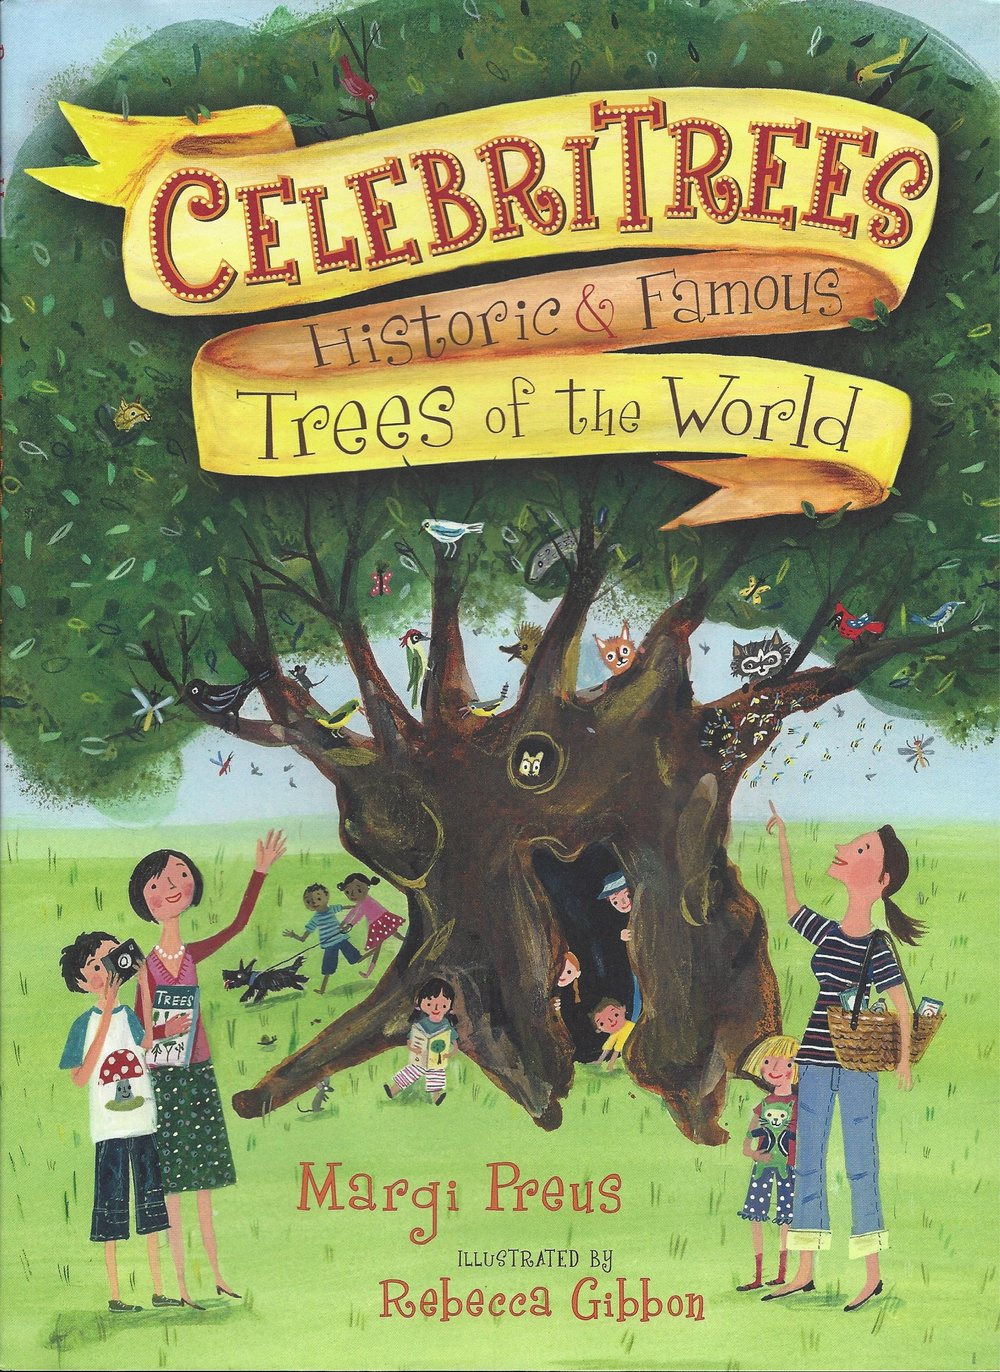 celebritrees cover-better image.jpg